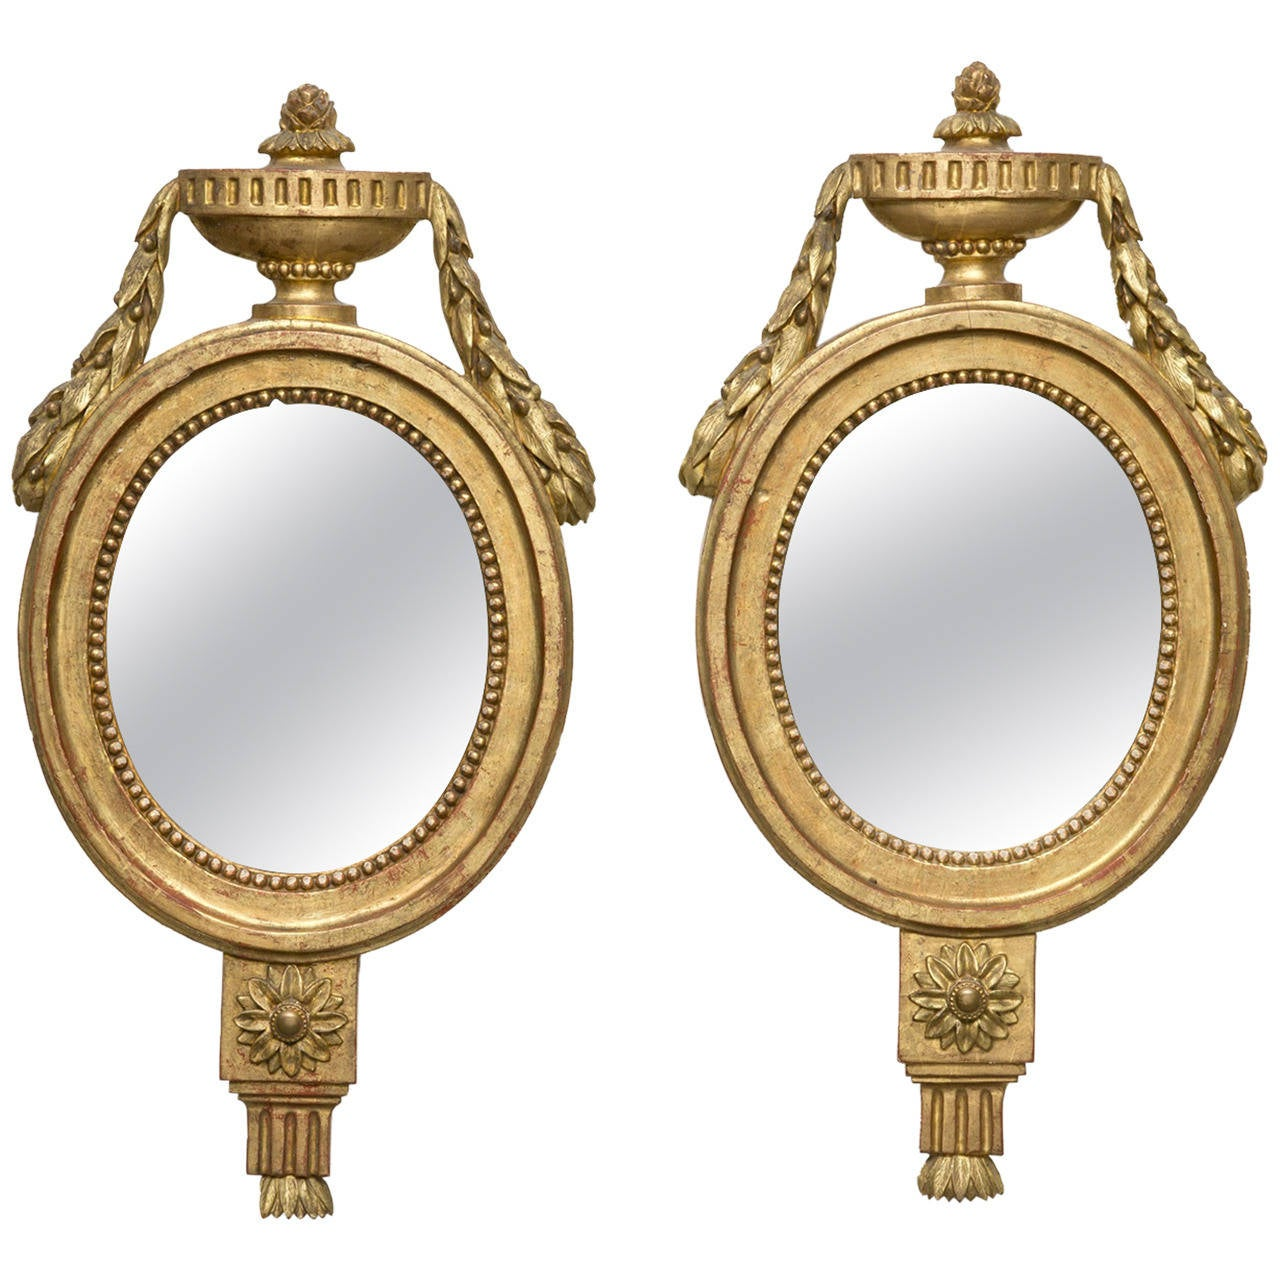 Pair of Italian Giltwood Mirrors, circa 1810